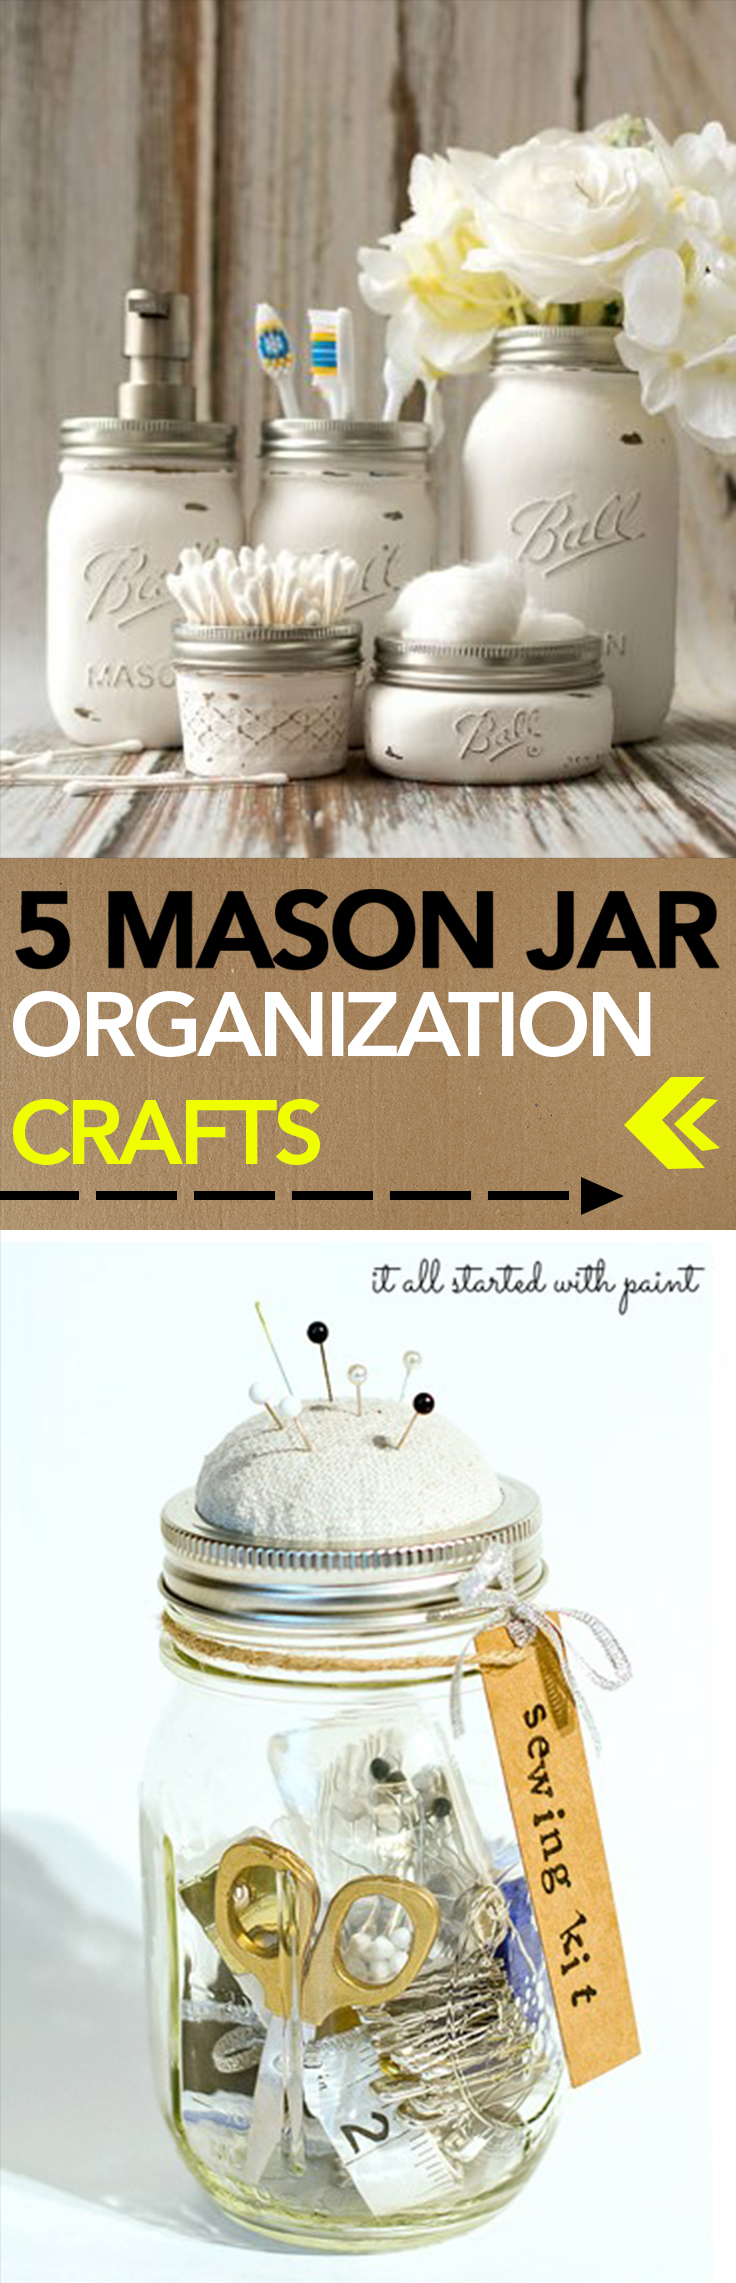 Mason jar organization, mason jar, DIY organization projects, popular pin, DIY home organization, home organization, organize your home.